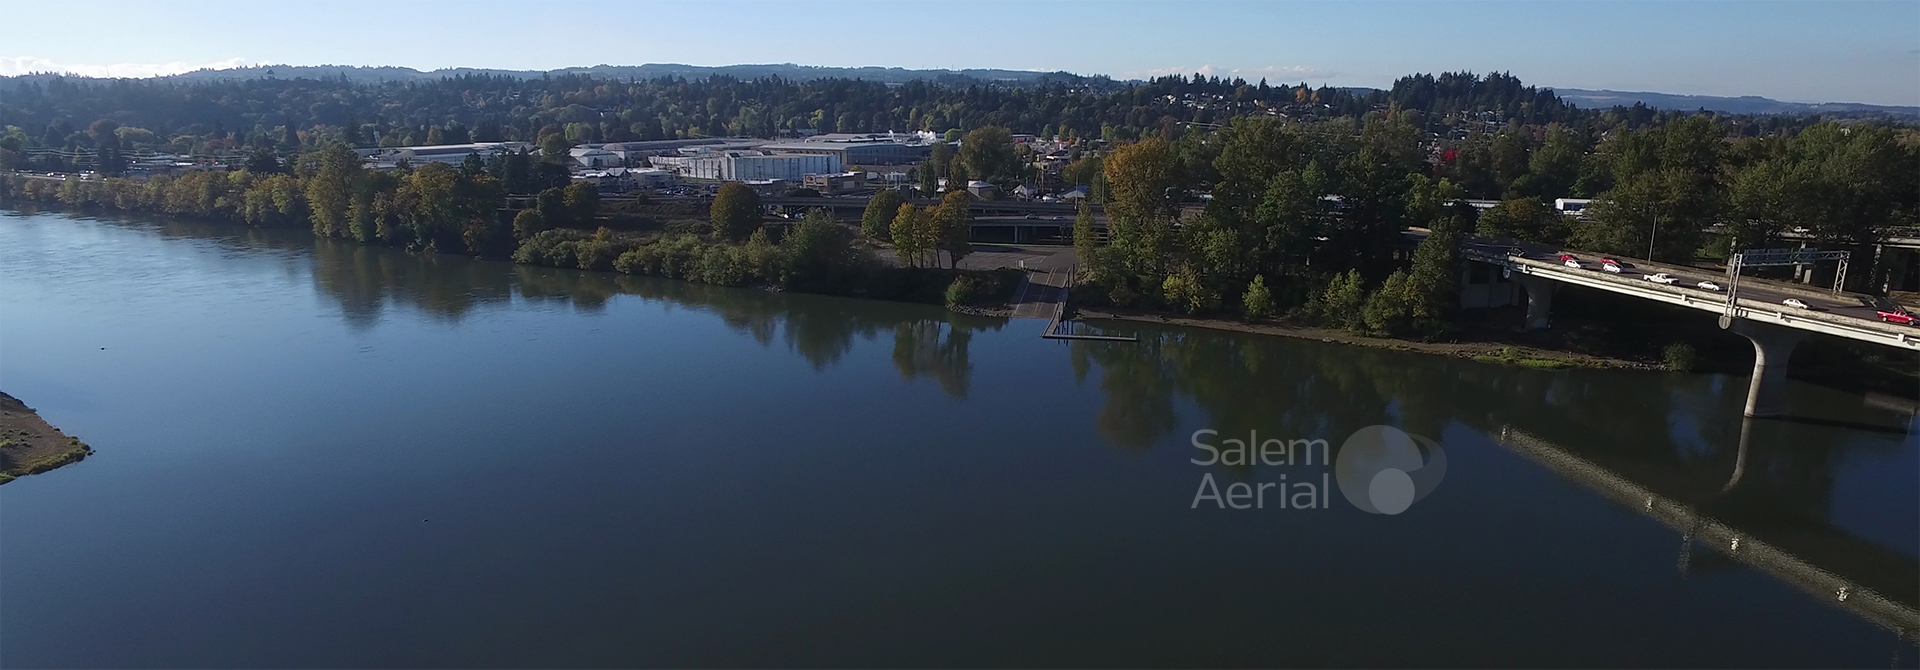 WillametteRiver_SalemAerial-Crop